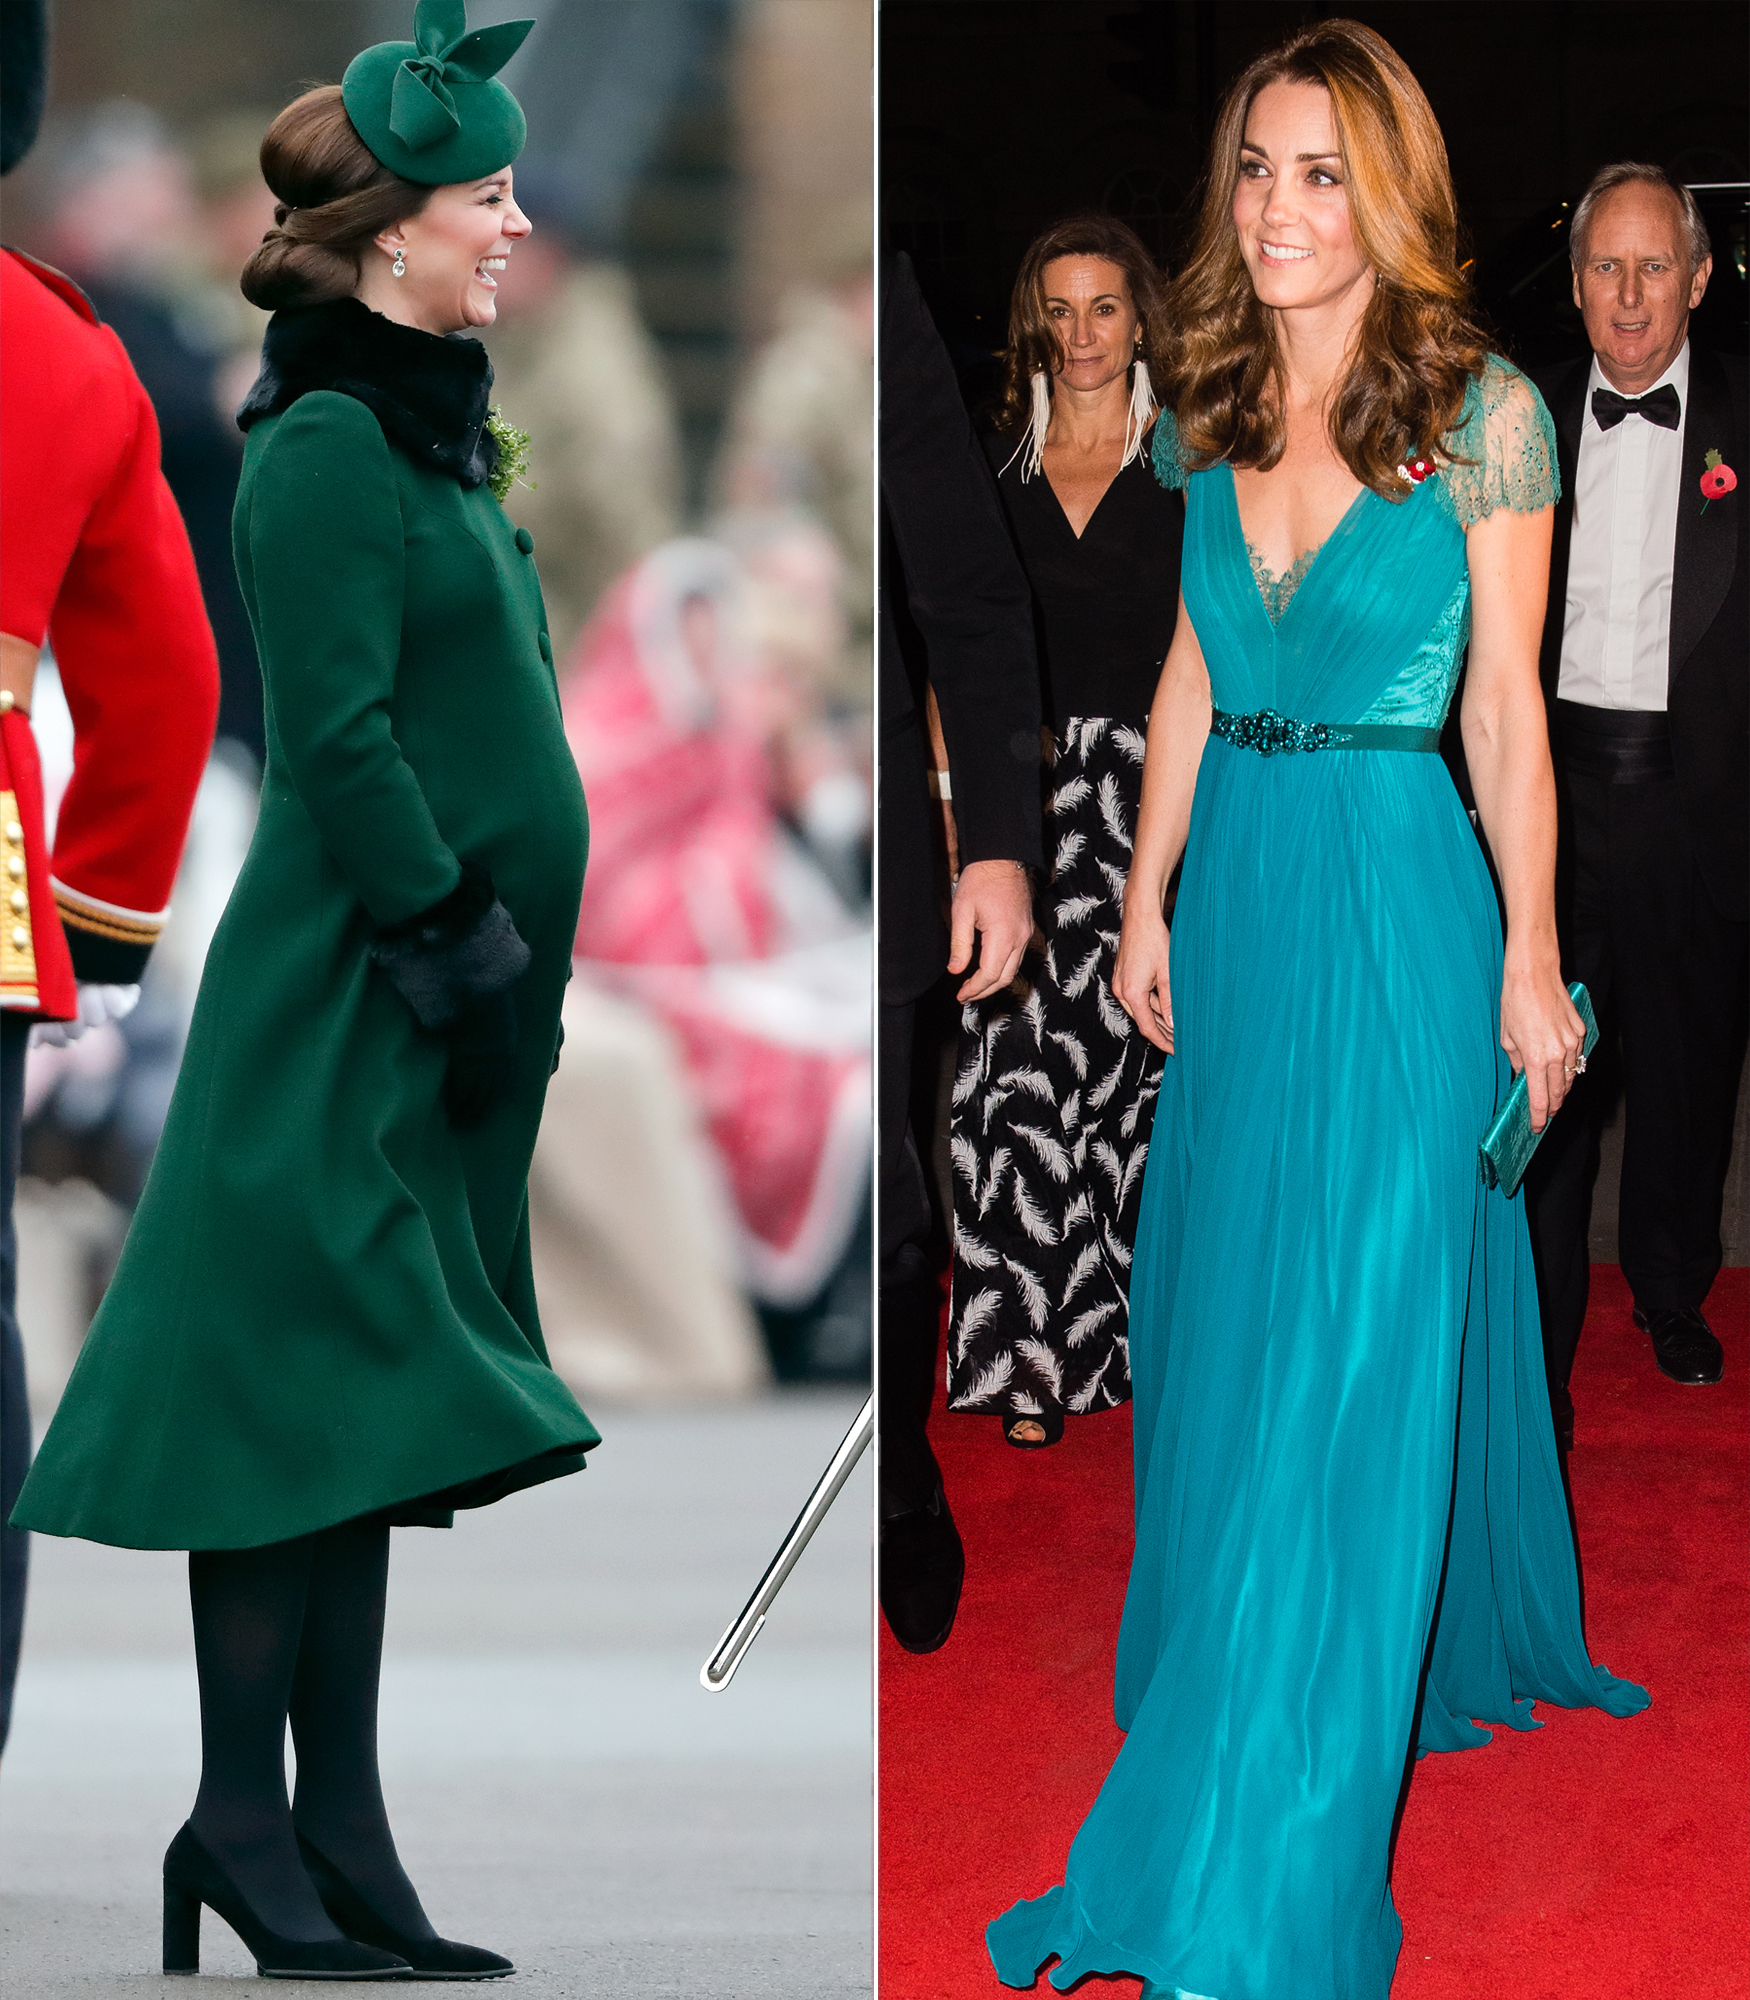 celebrity baby weight loss 2018 - She's royally fit — yet again! Less than three months after welcoming her third heir, Prince Louis, on April 23, a thin Duchess Kate stepped out in her teal Jenny Packham gown on July 10 (right).